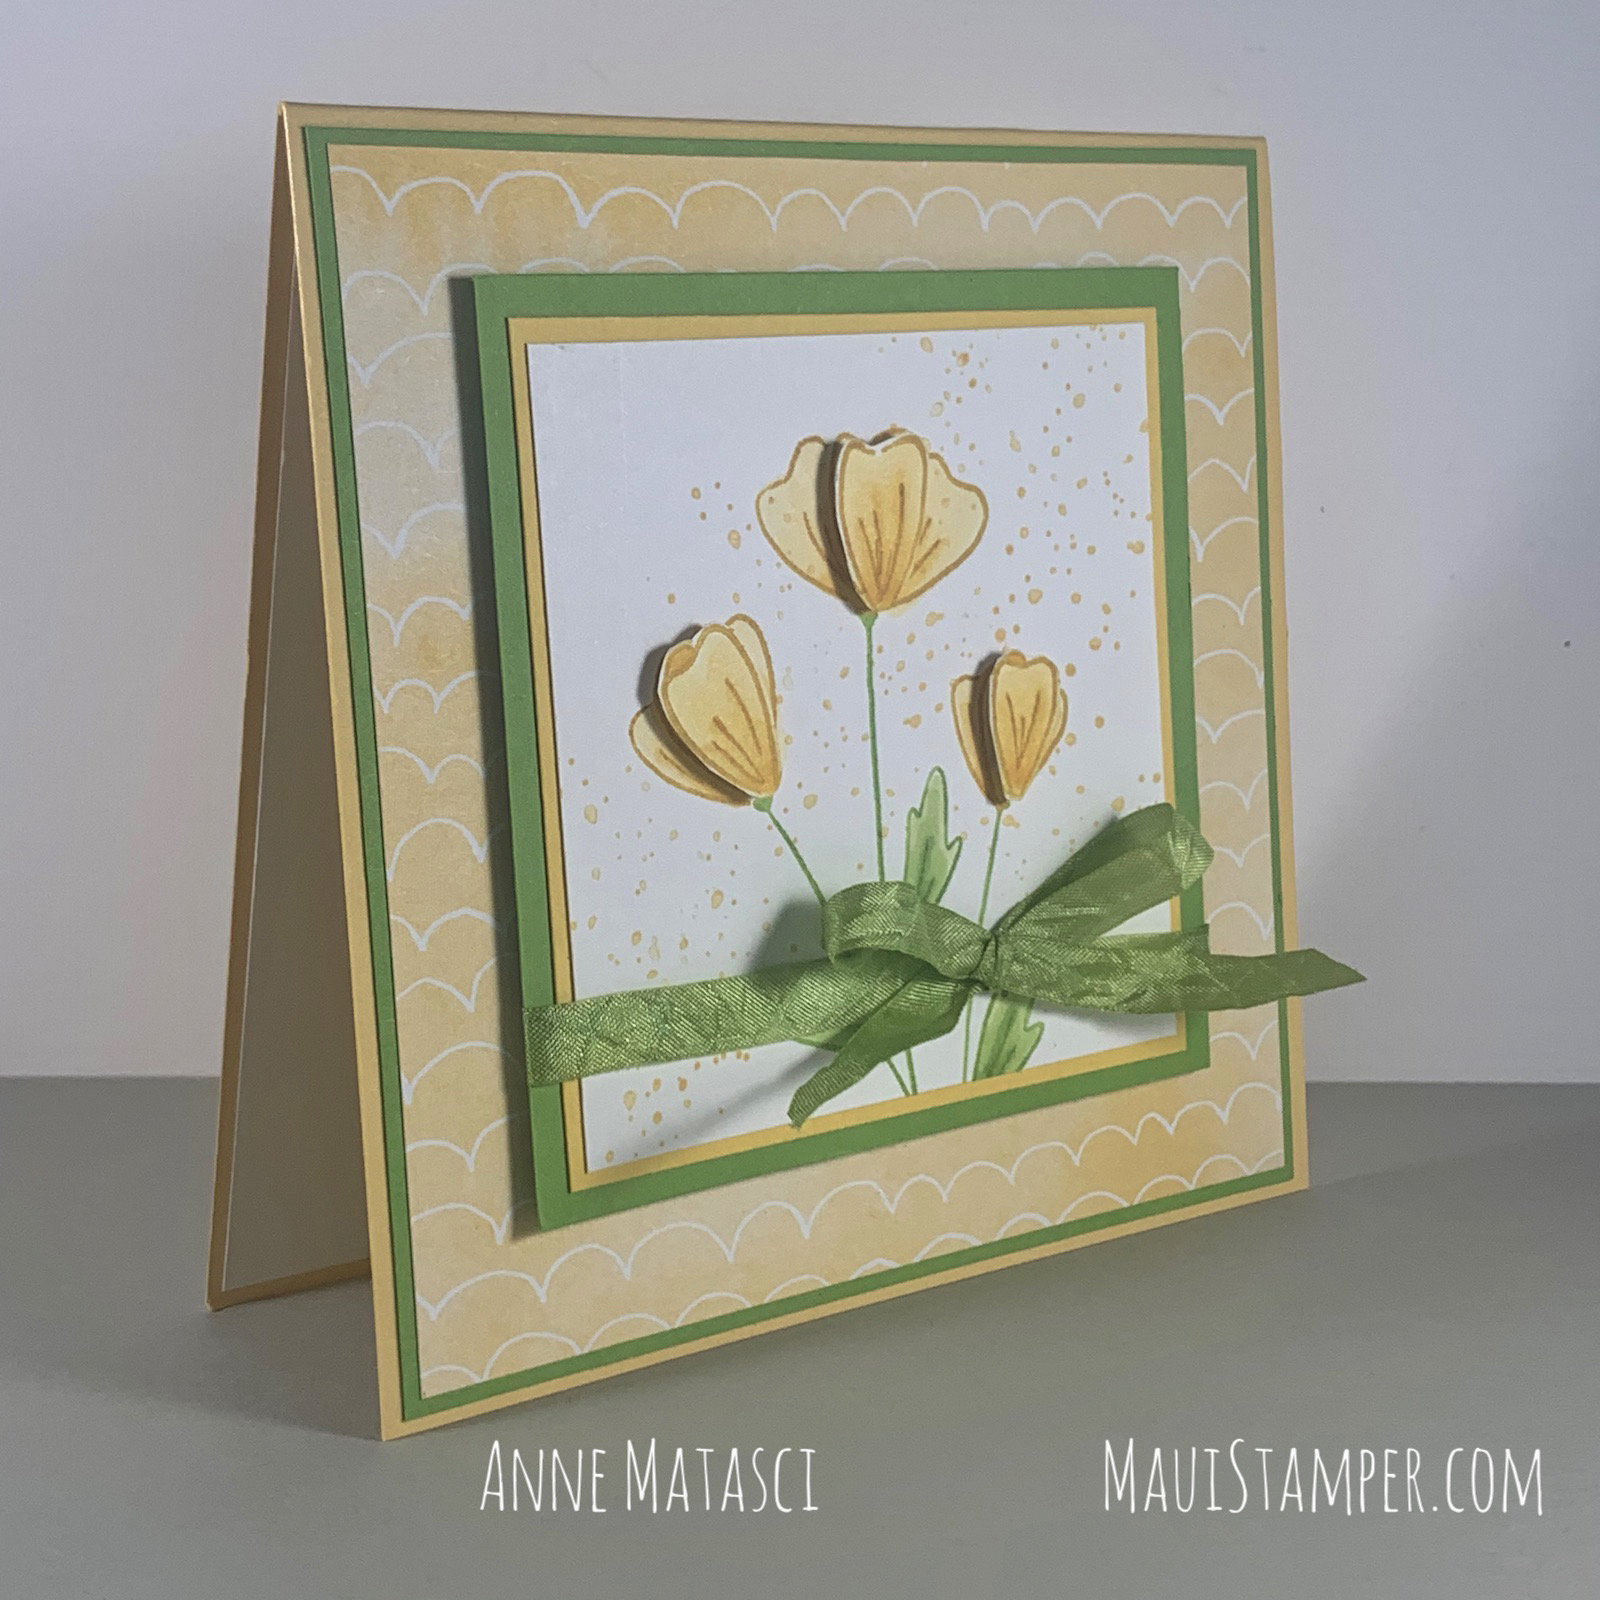 Maui Stamper Stampin Up Flowers of Friendship Square Card